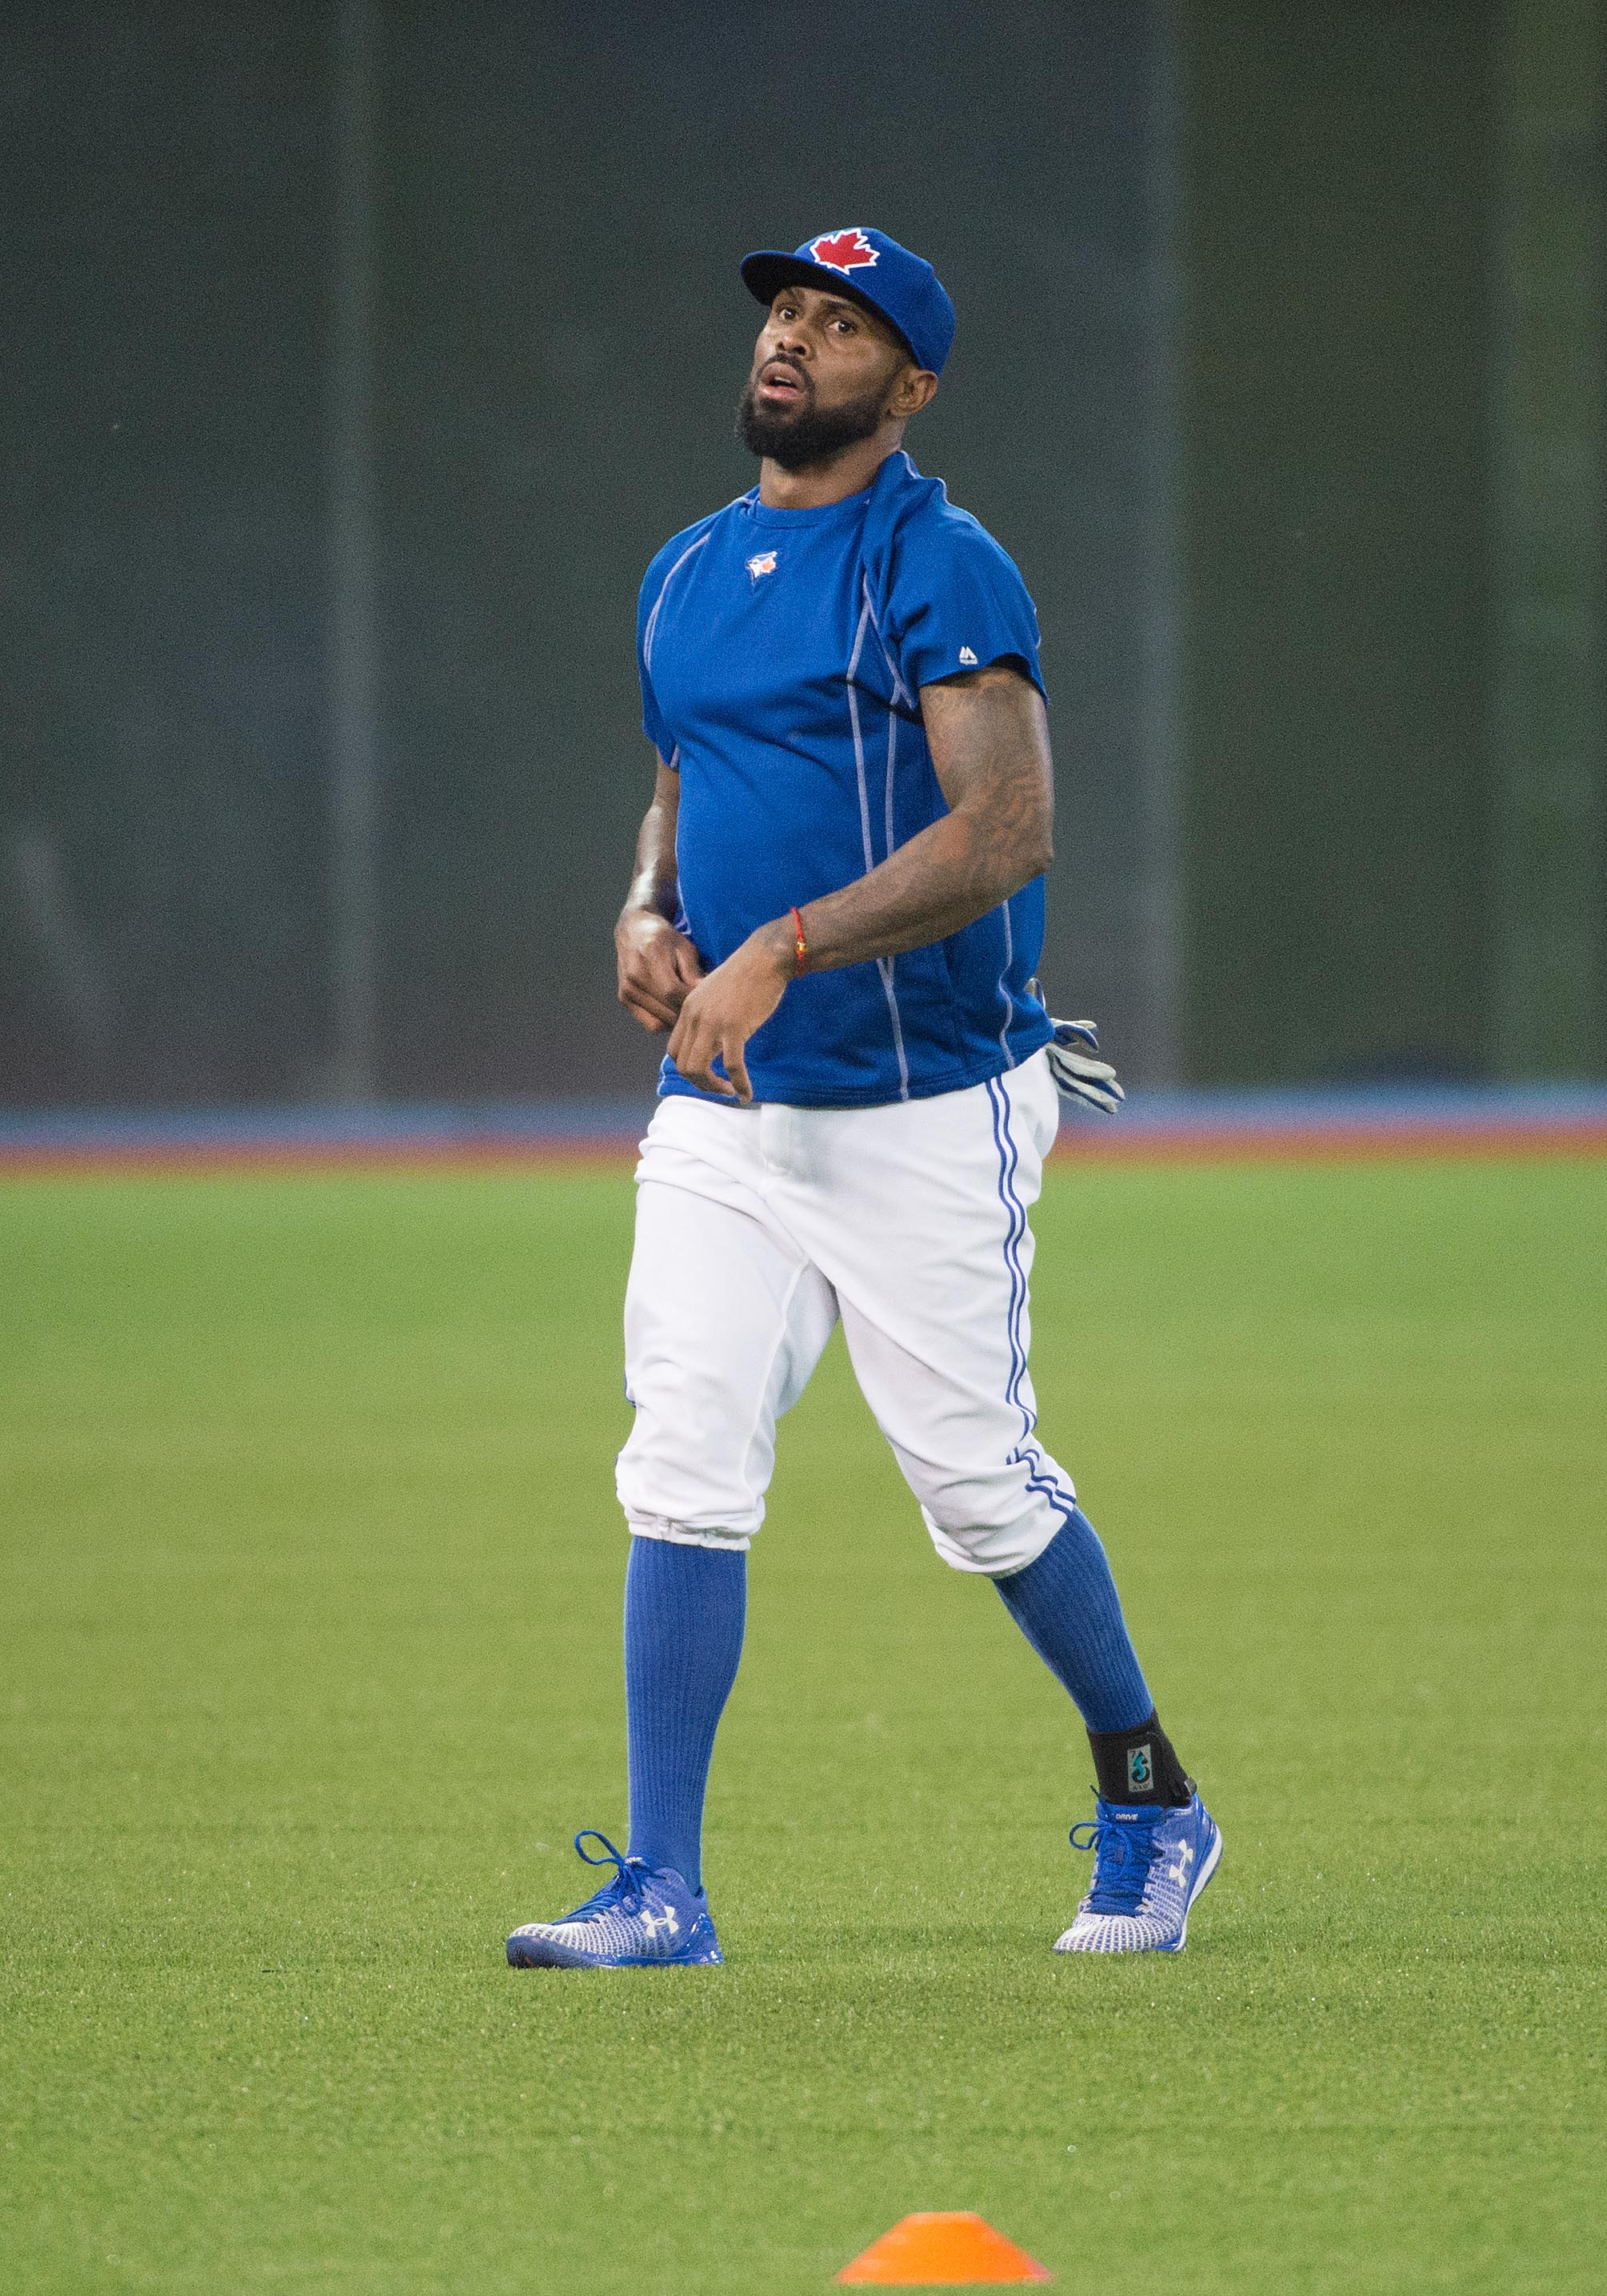 Jose Reyes starts his rehab assignment with a hit for Buffalo